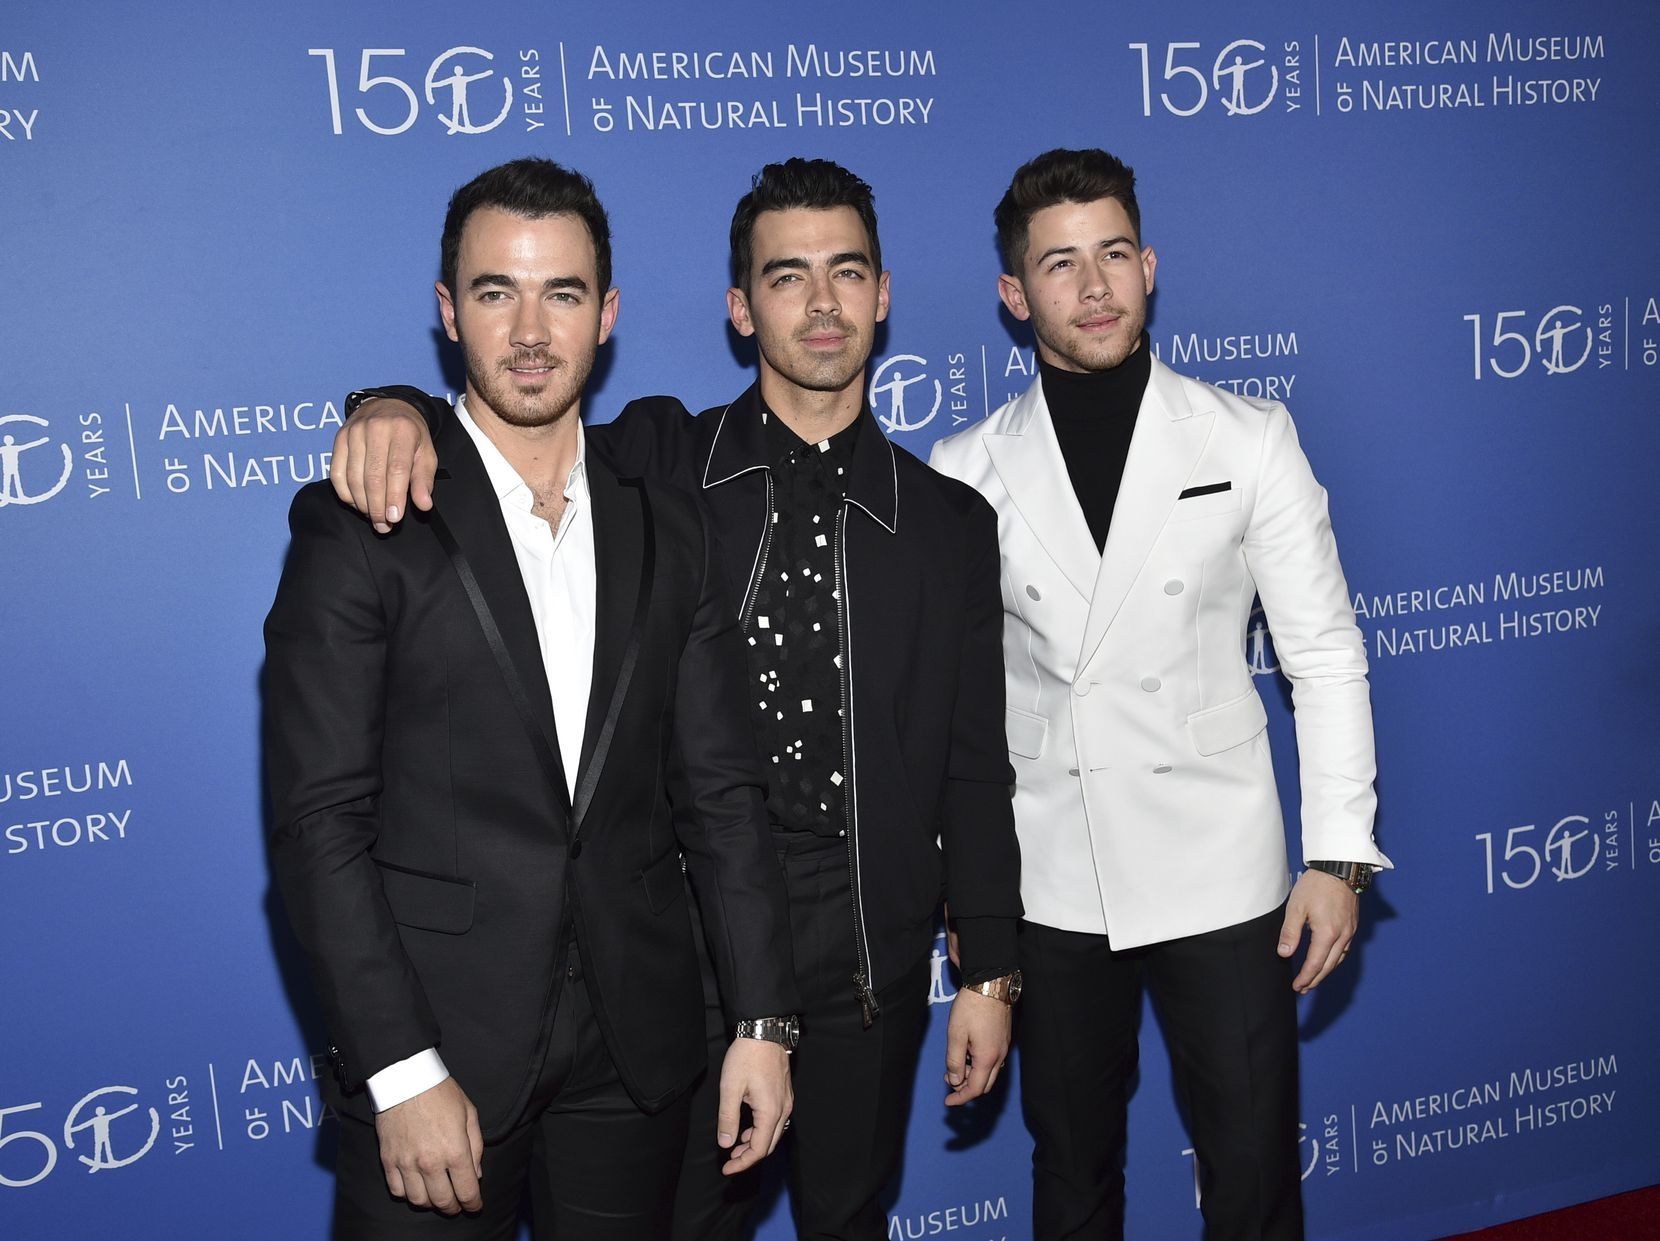 The Jonas Brothers, from left, Kevin Jonas, Joe Jonas and Nick Jonas attend the American Museum of Natural History's 2019 Museum Gala on Thursday, Nov. 21, 2019, in New York.